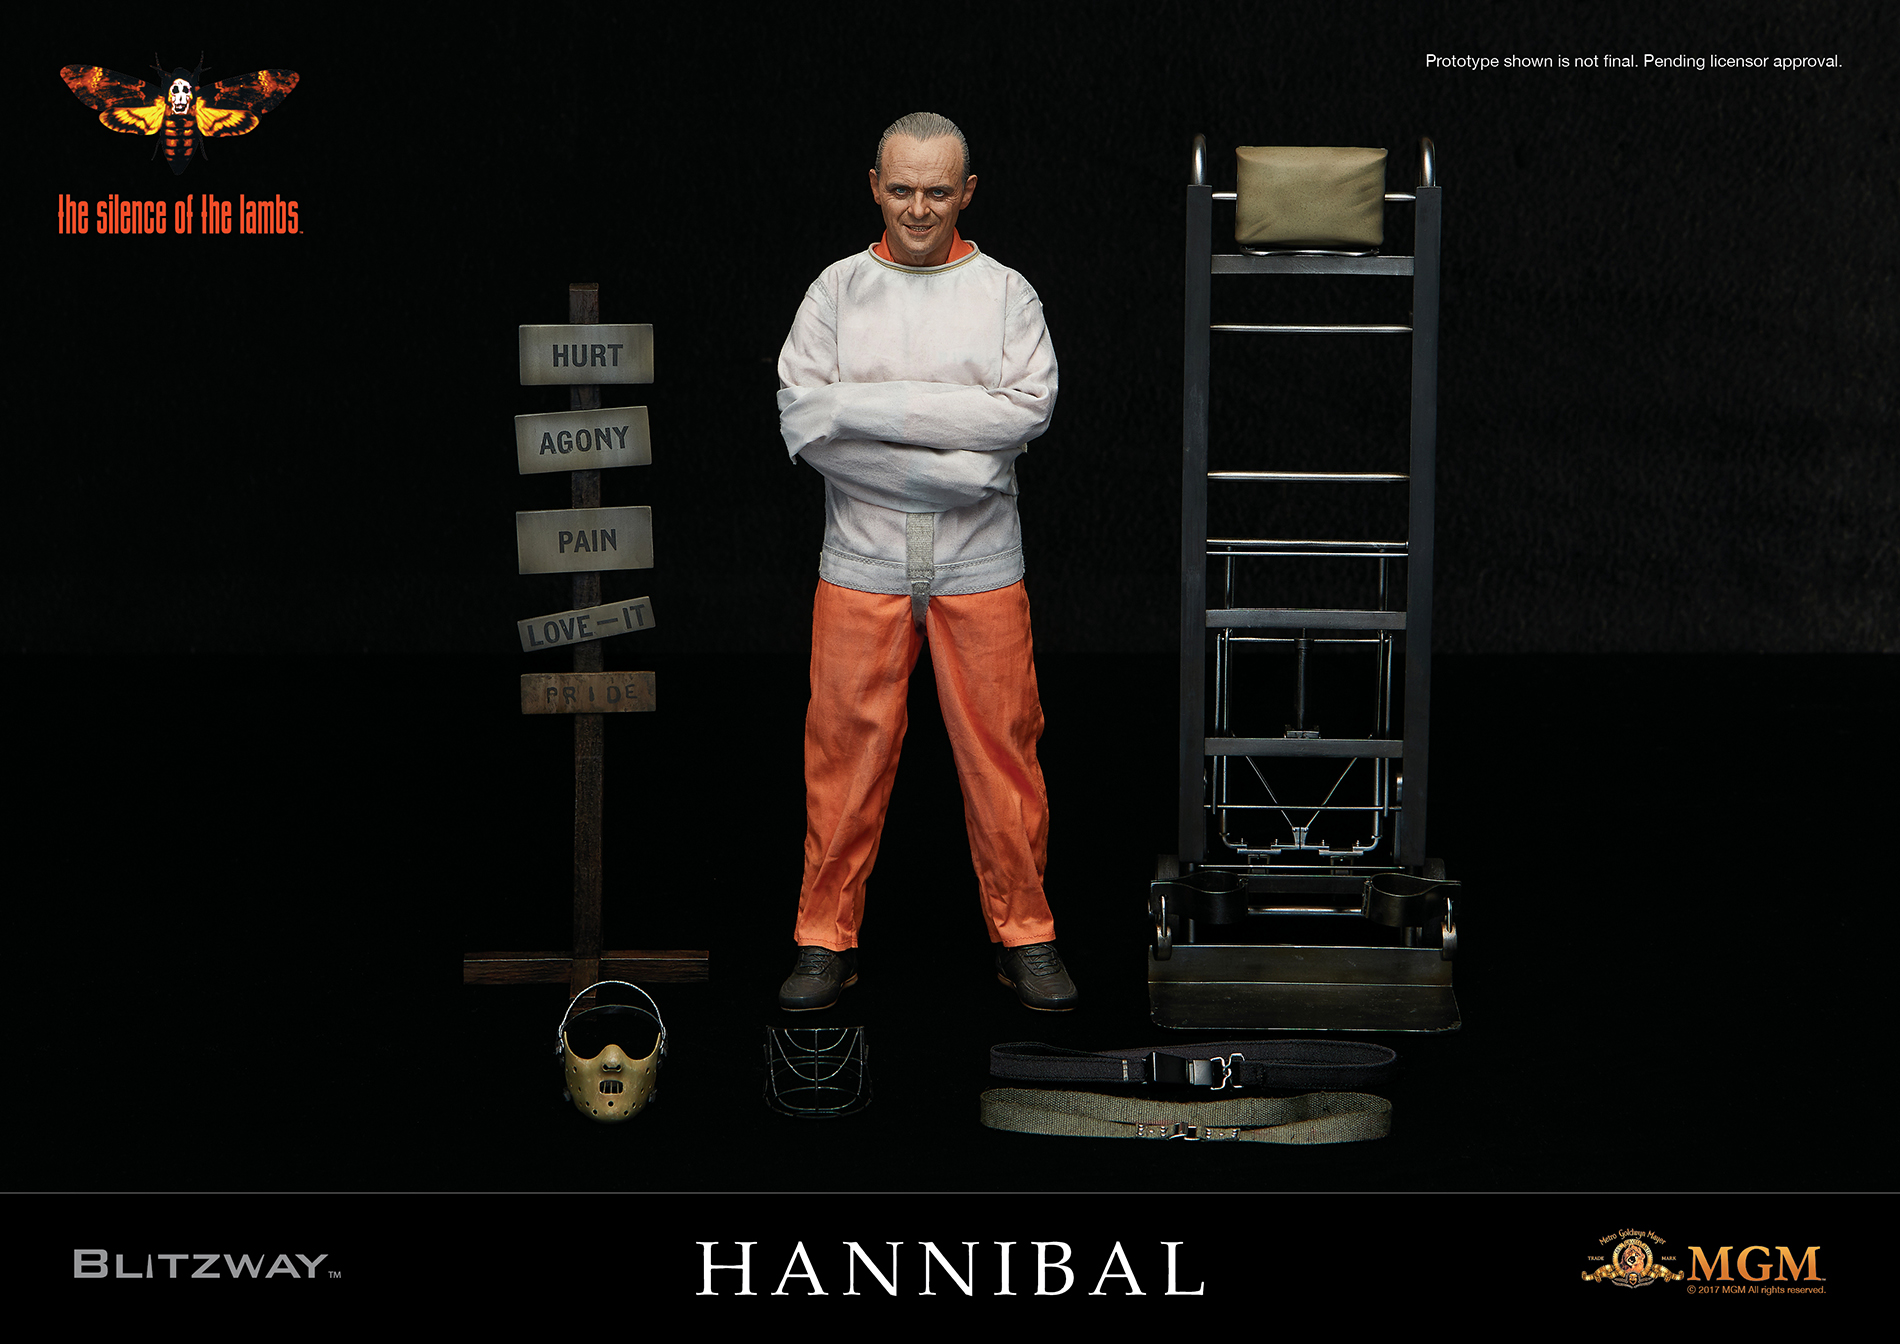 BLITZWAY BW-UMS10302 The Silence of the Lambs, 1991 - Hannibal Lecter (Straitjacket ver.)